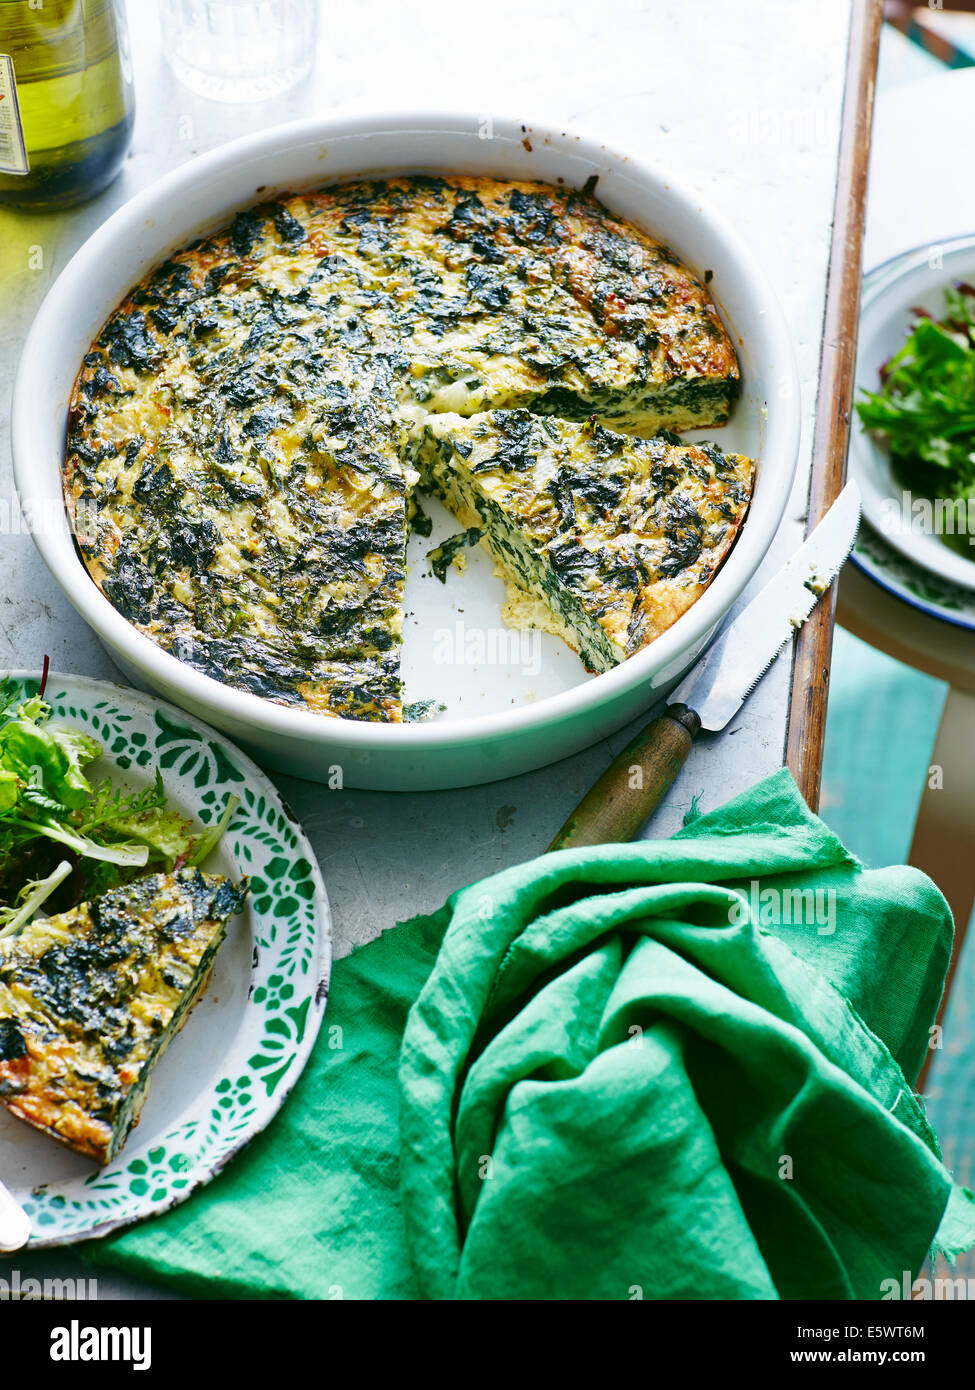 Dish of silverbeet and feta frittata with portion on plate - Stock Image